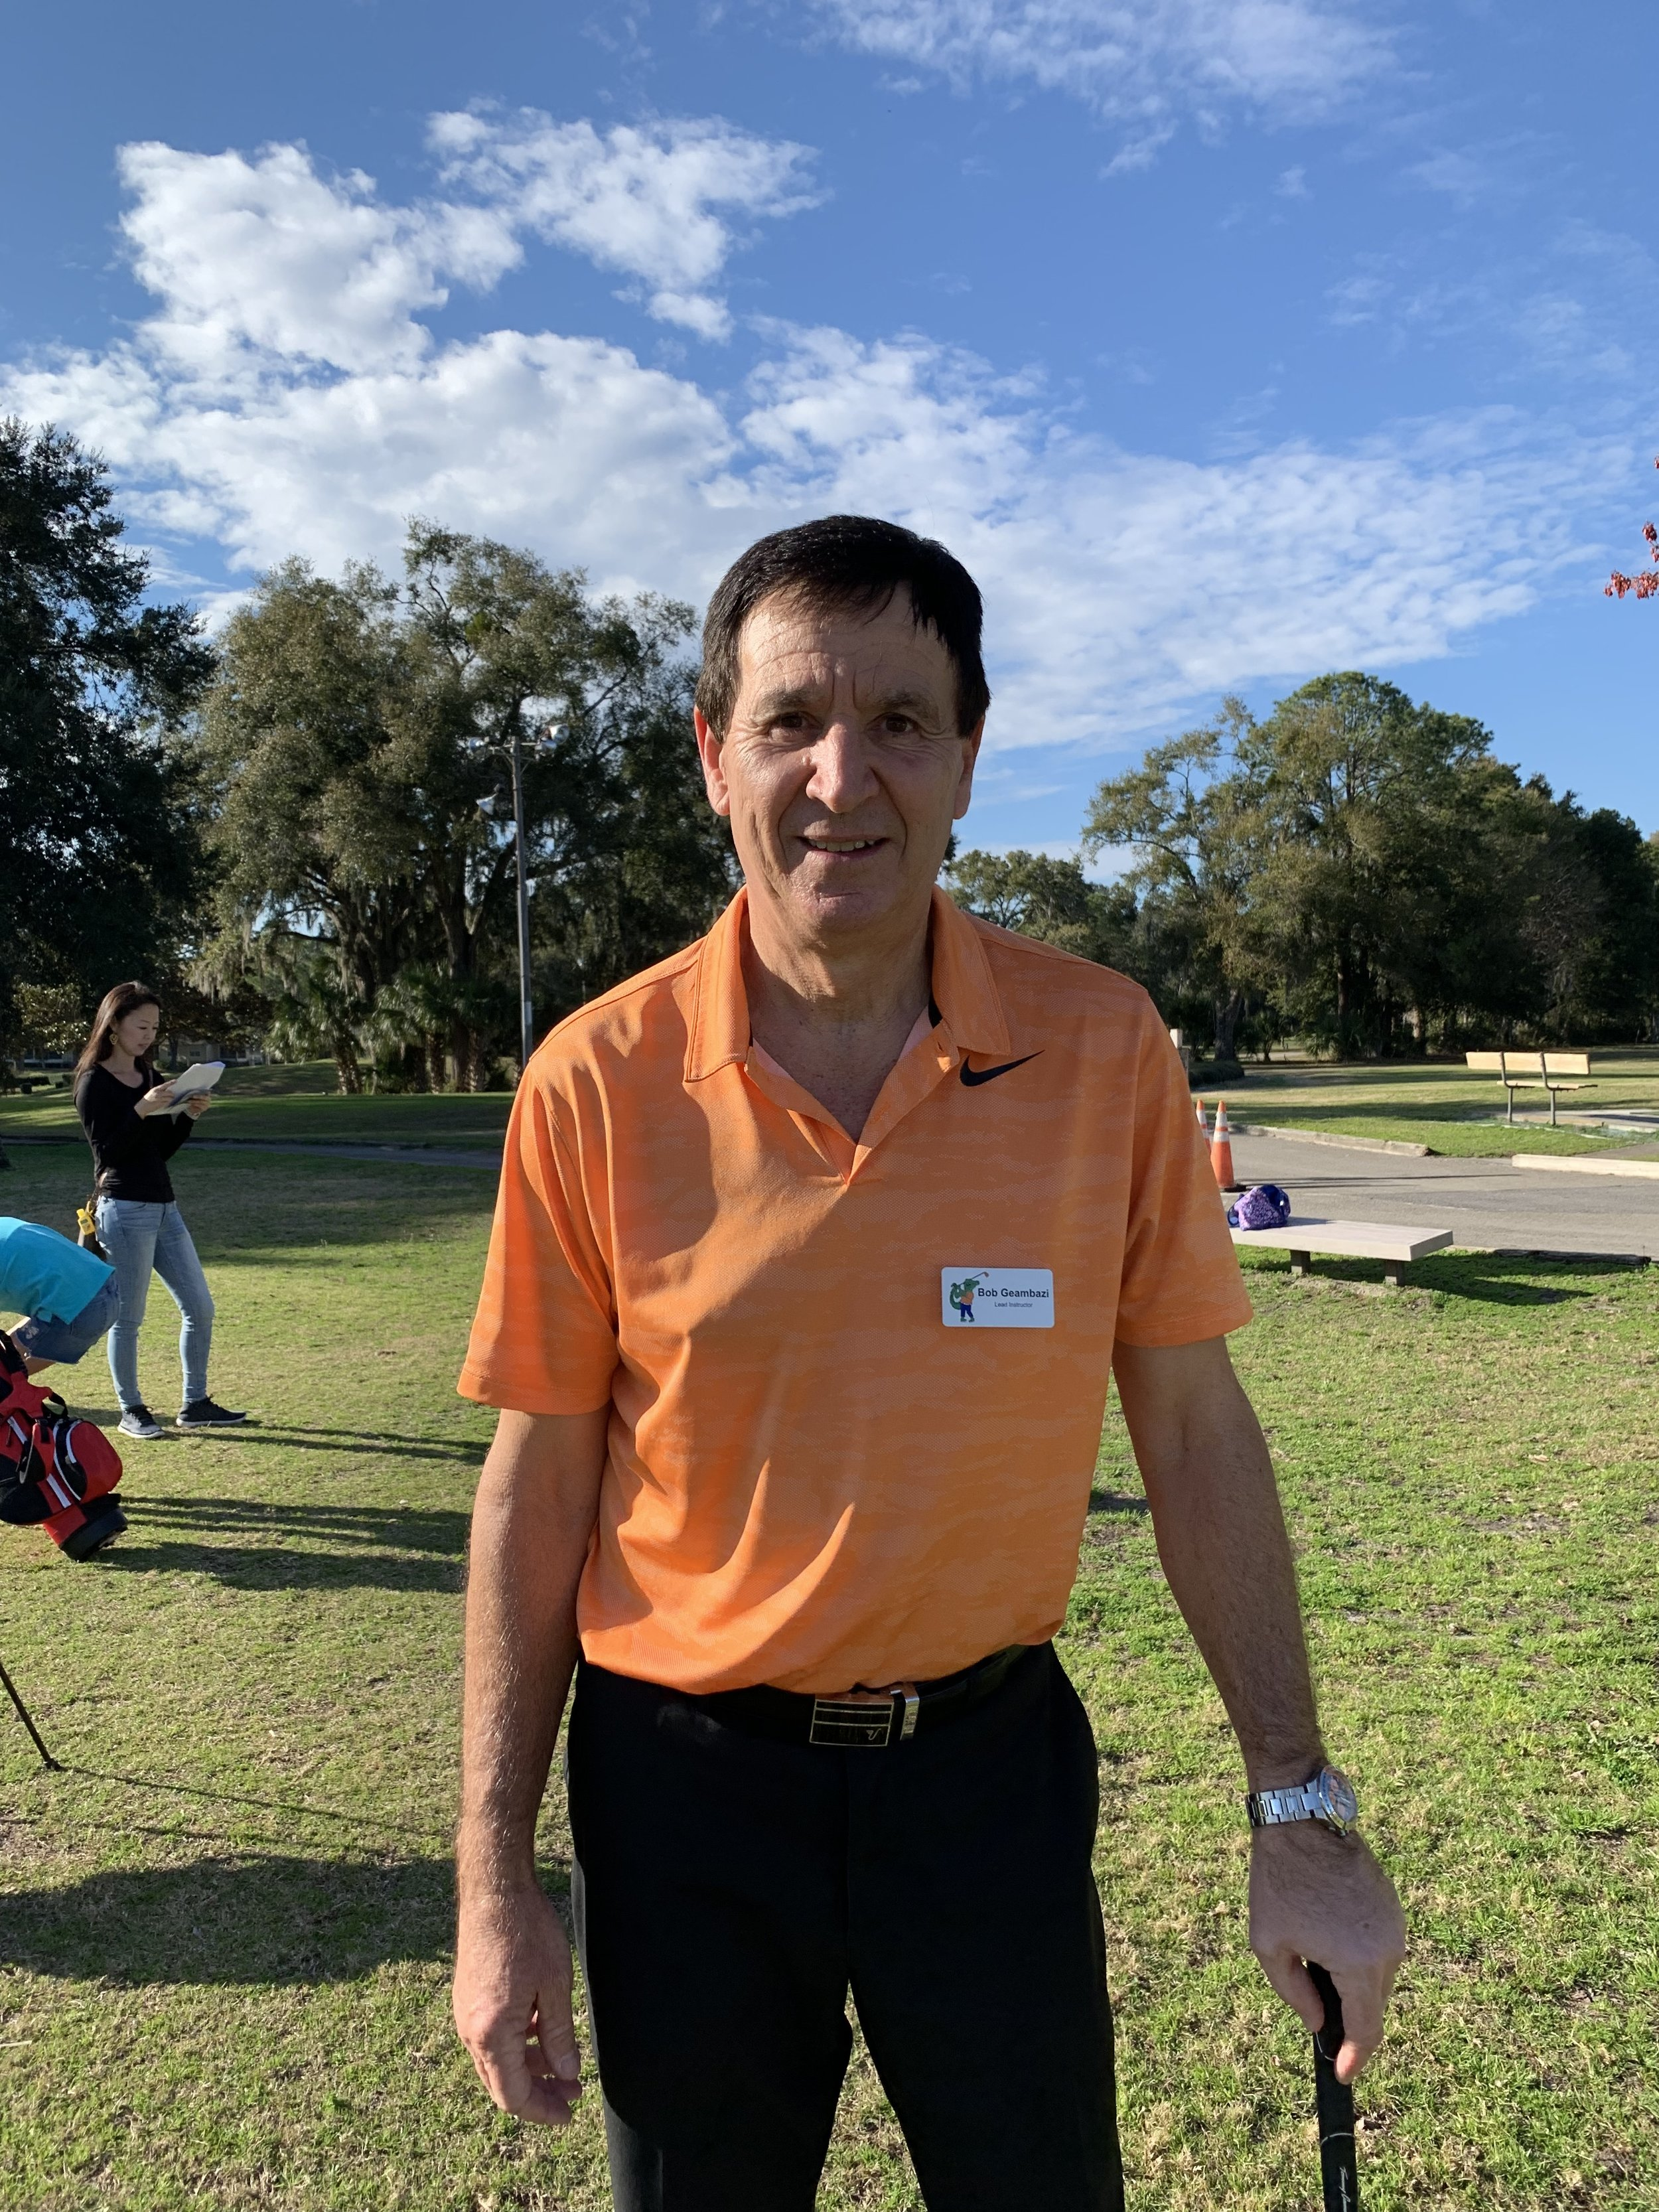 Bob Geambazi, PGA    Class A PGA Professional at Gainesville Country Club    Playing 2 Coordinator